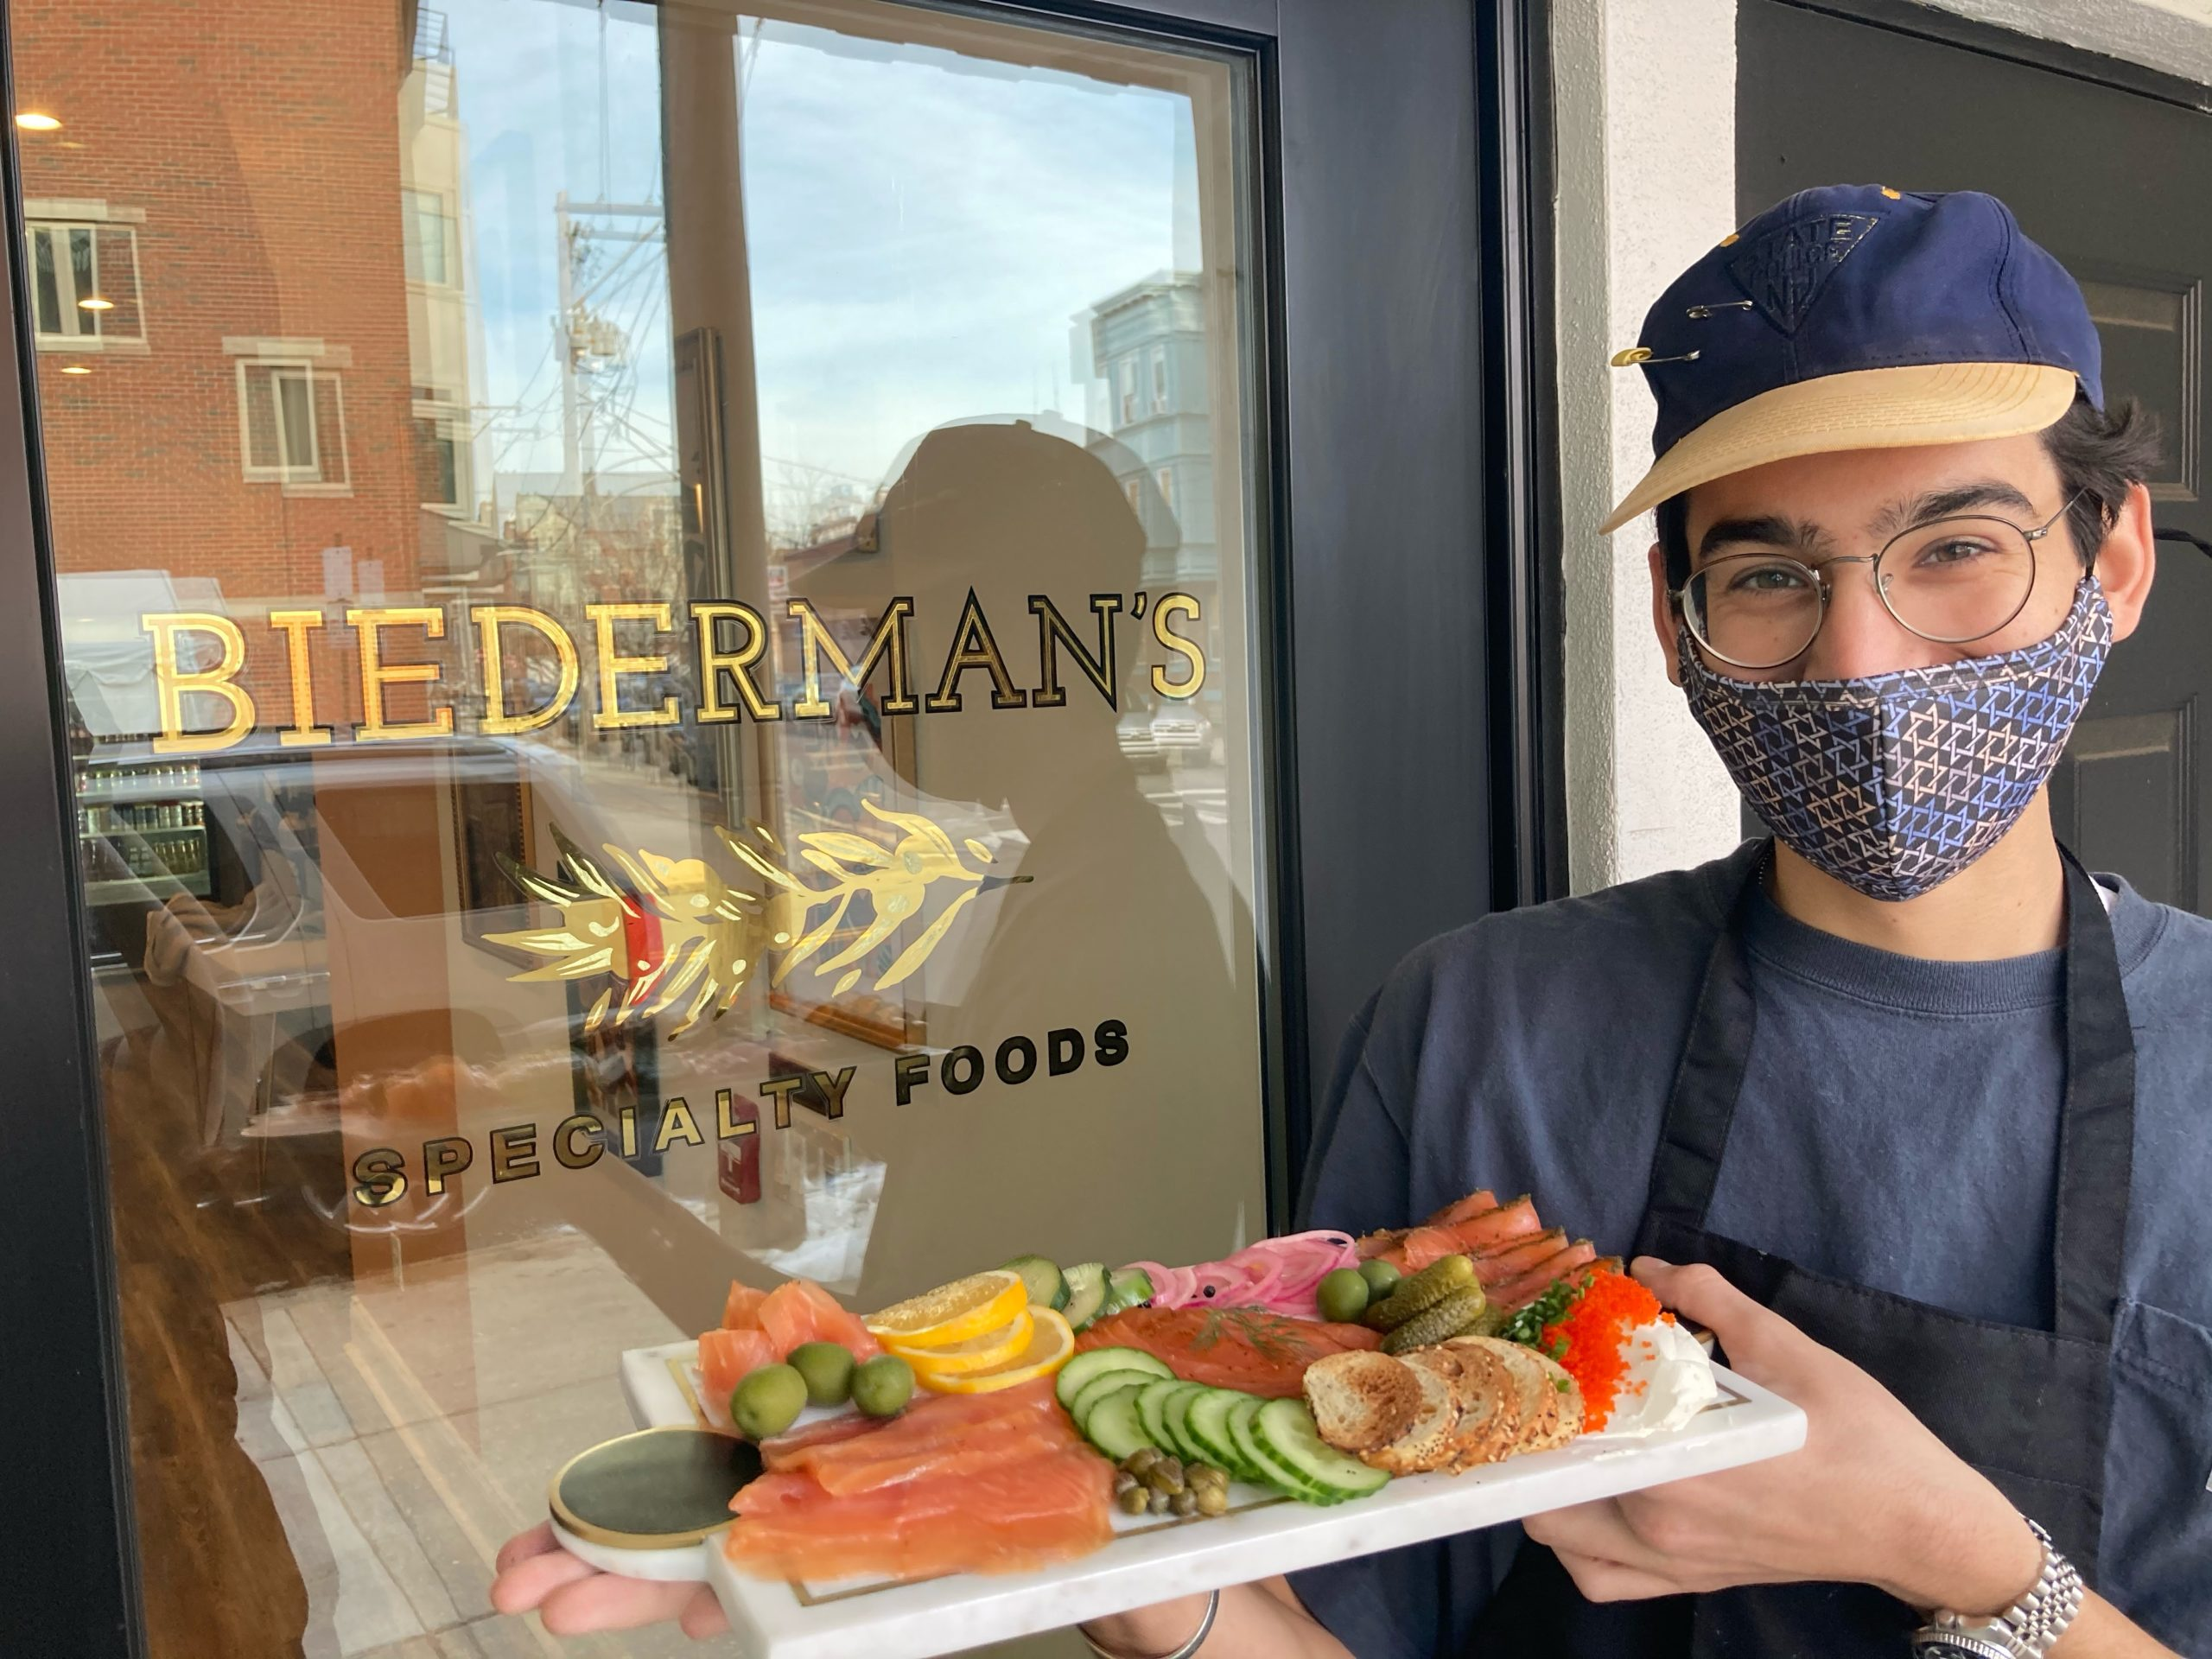 young man in mask holds plate of food in front of storefront